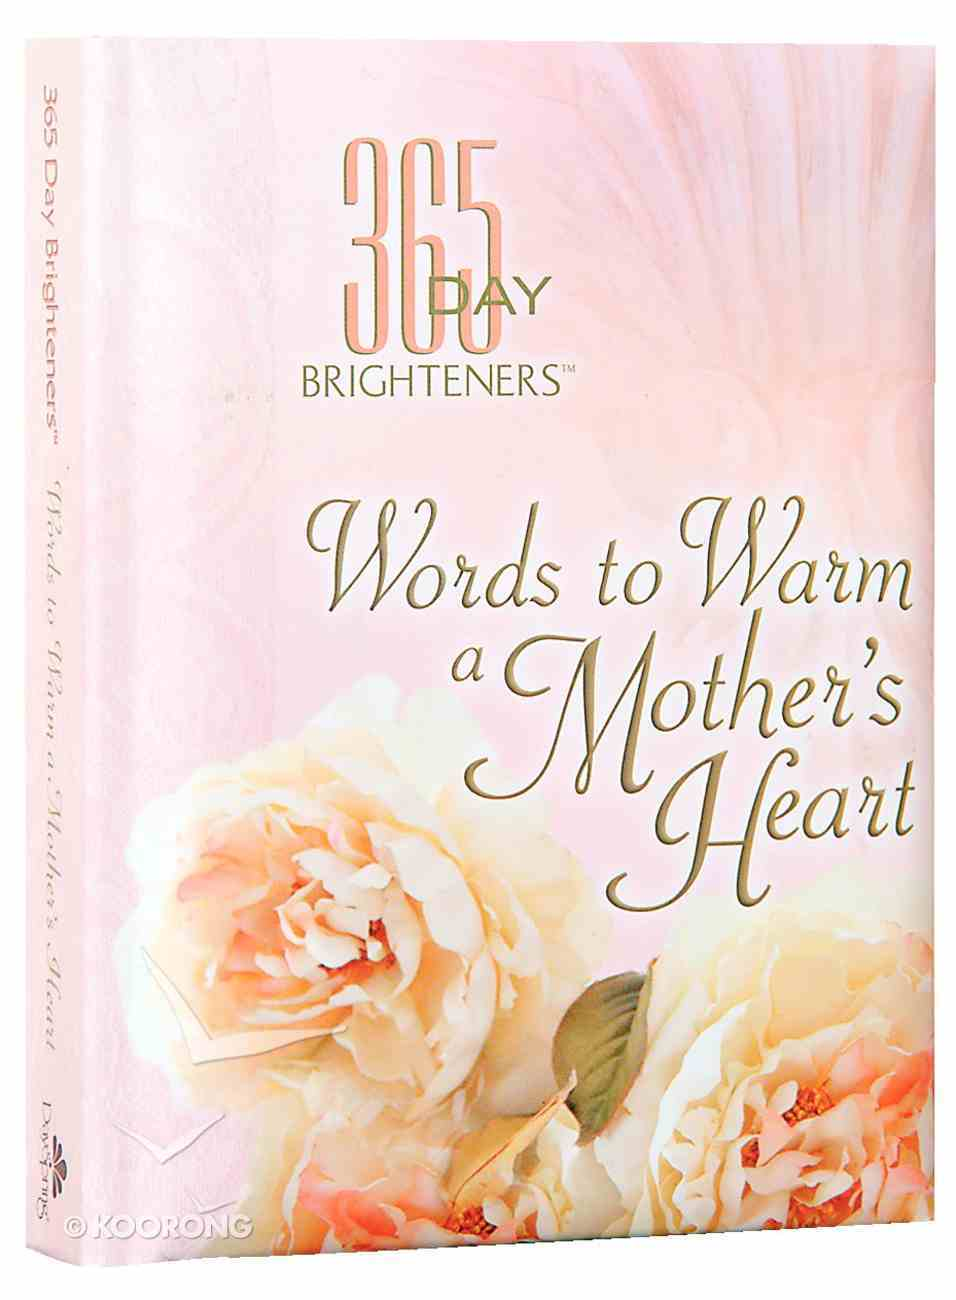 Words to Warm a Mother's Heart (365 Day Brighteners Series) Hardback